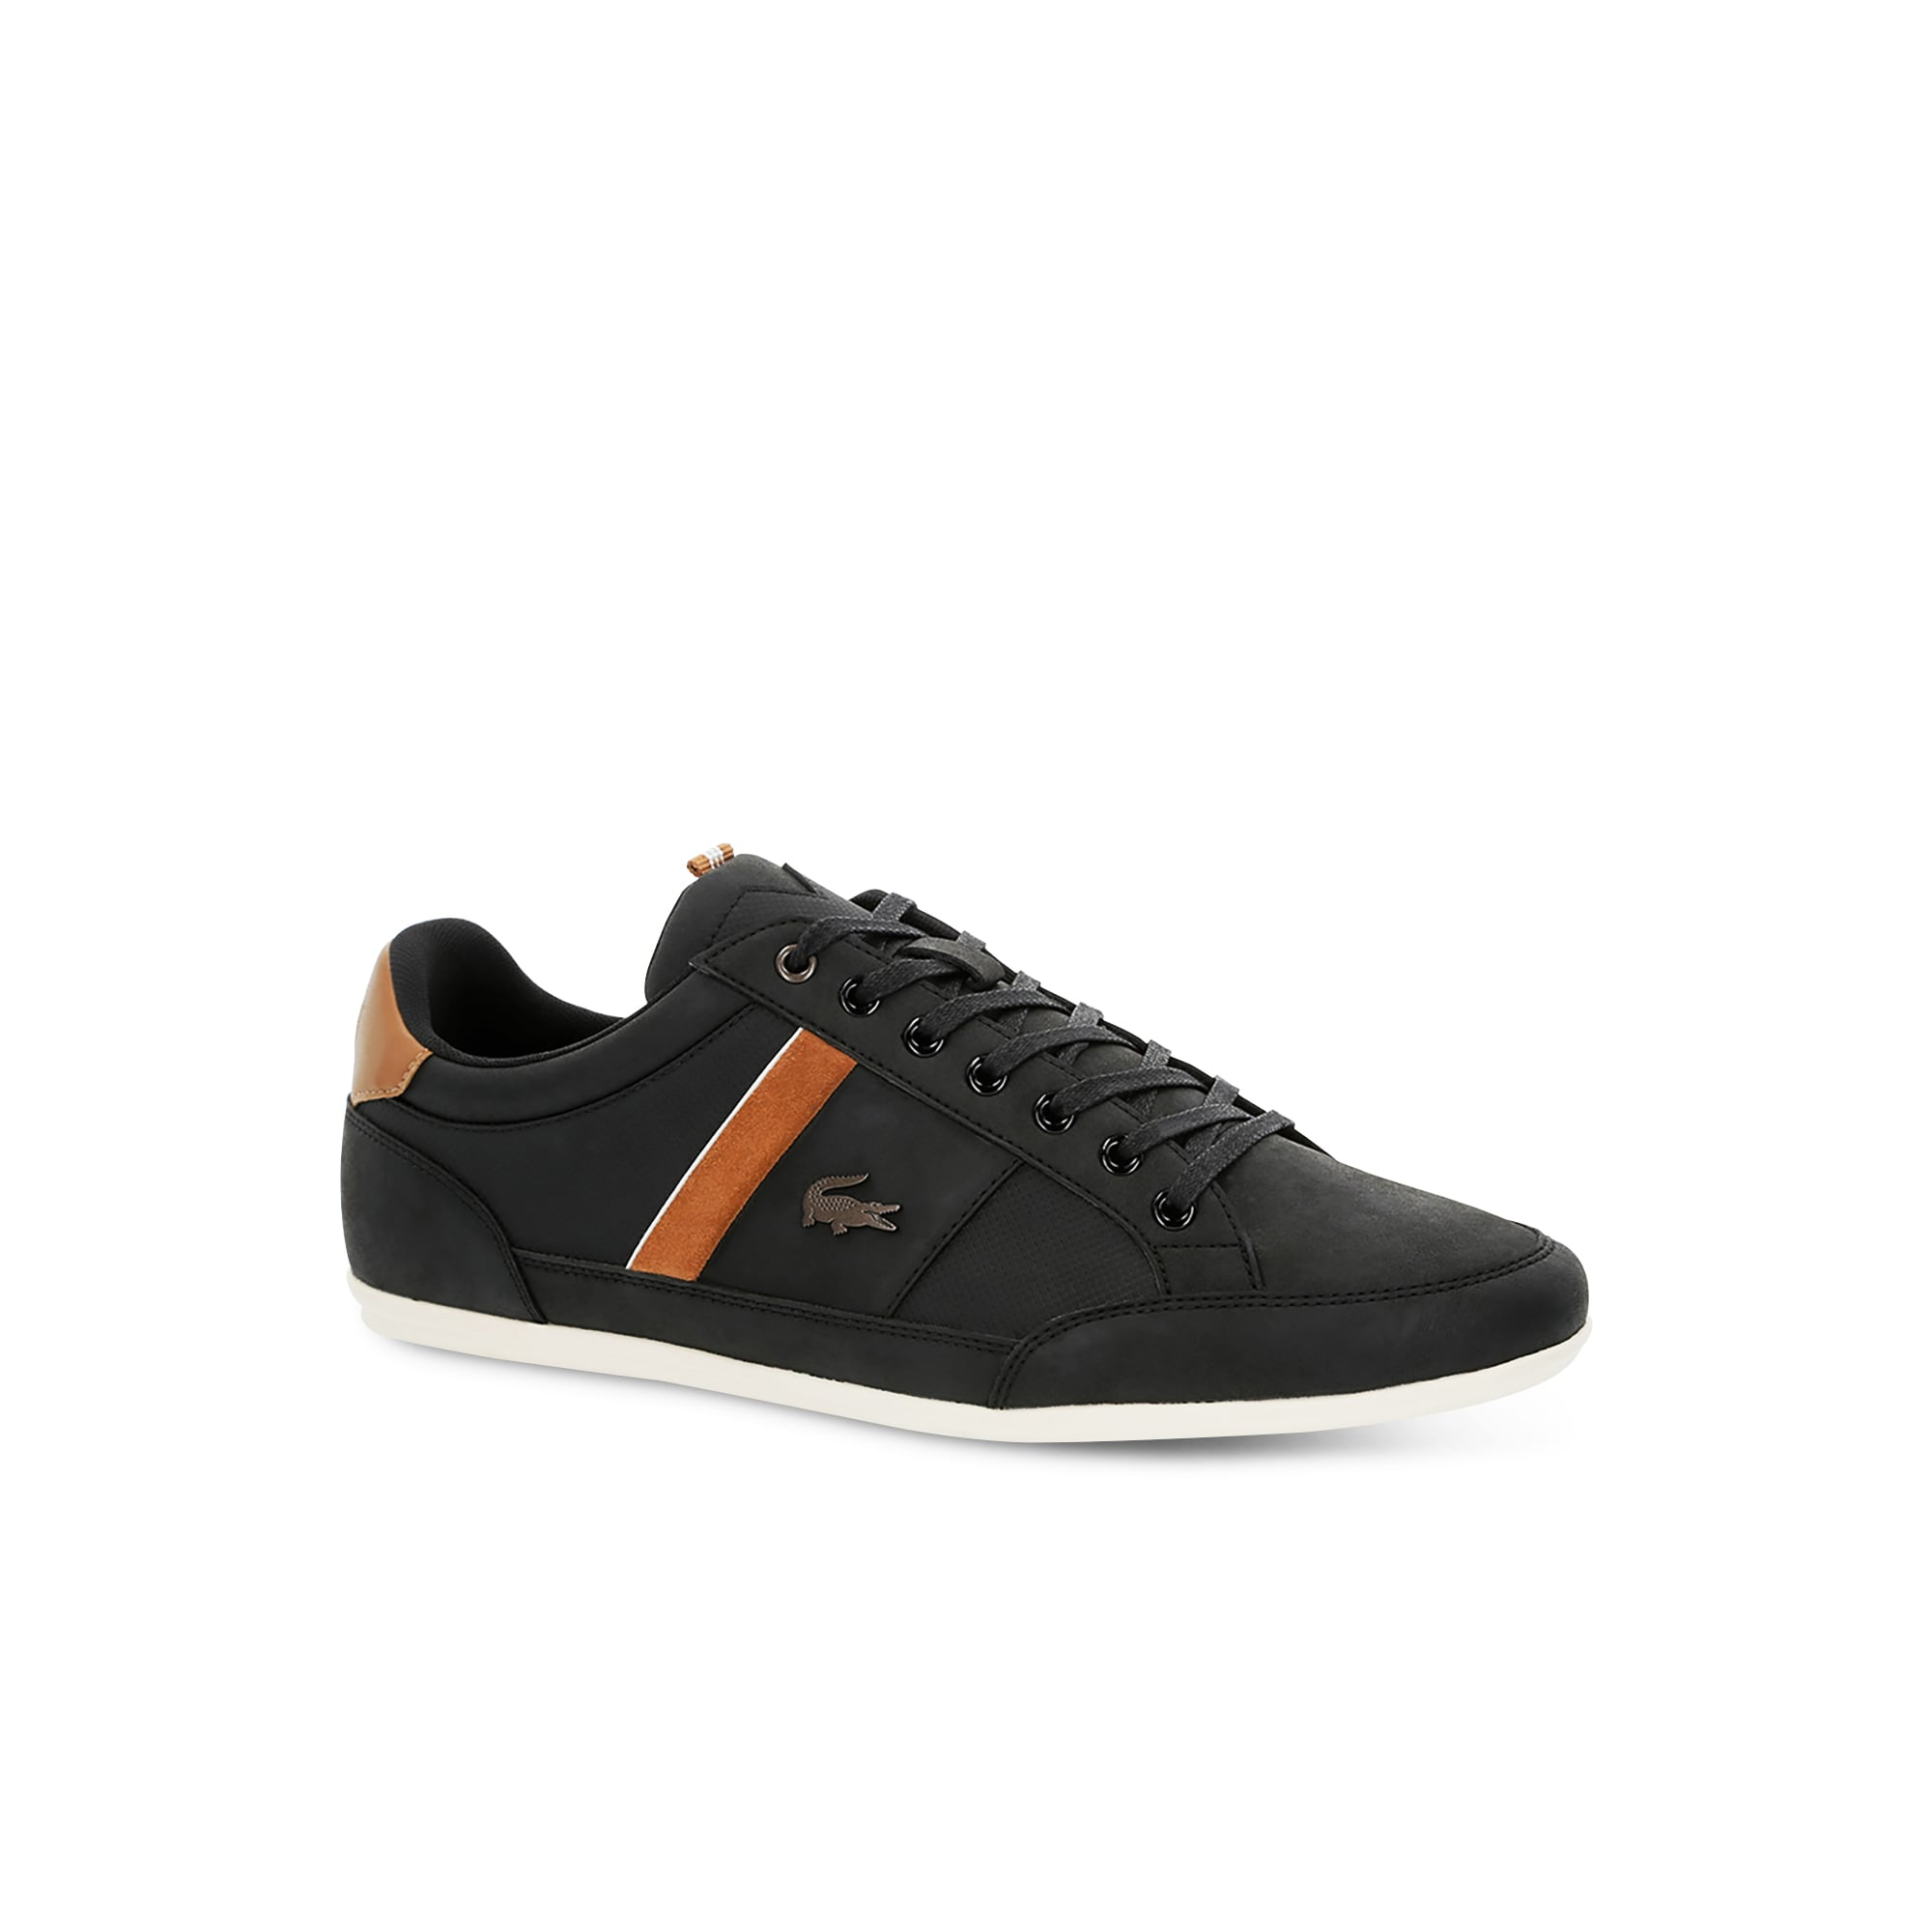 Homme Chaussures Homme Baskets Sneakers Et Lacoste O6TYq0w